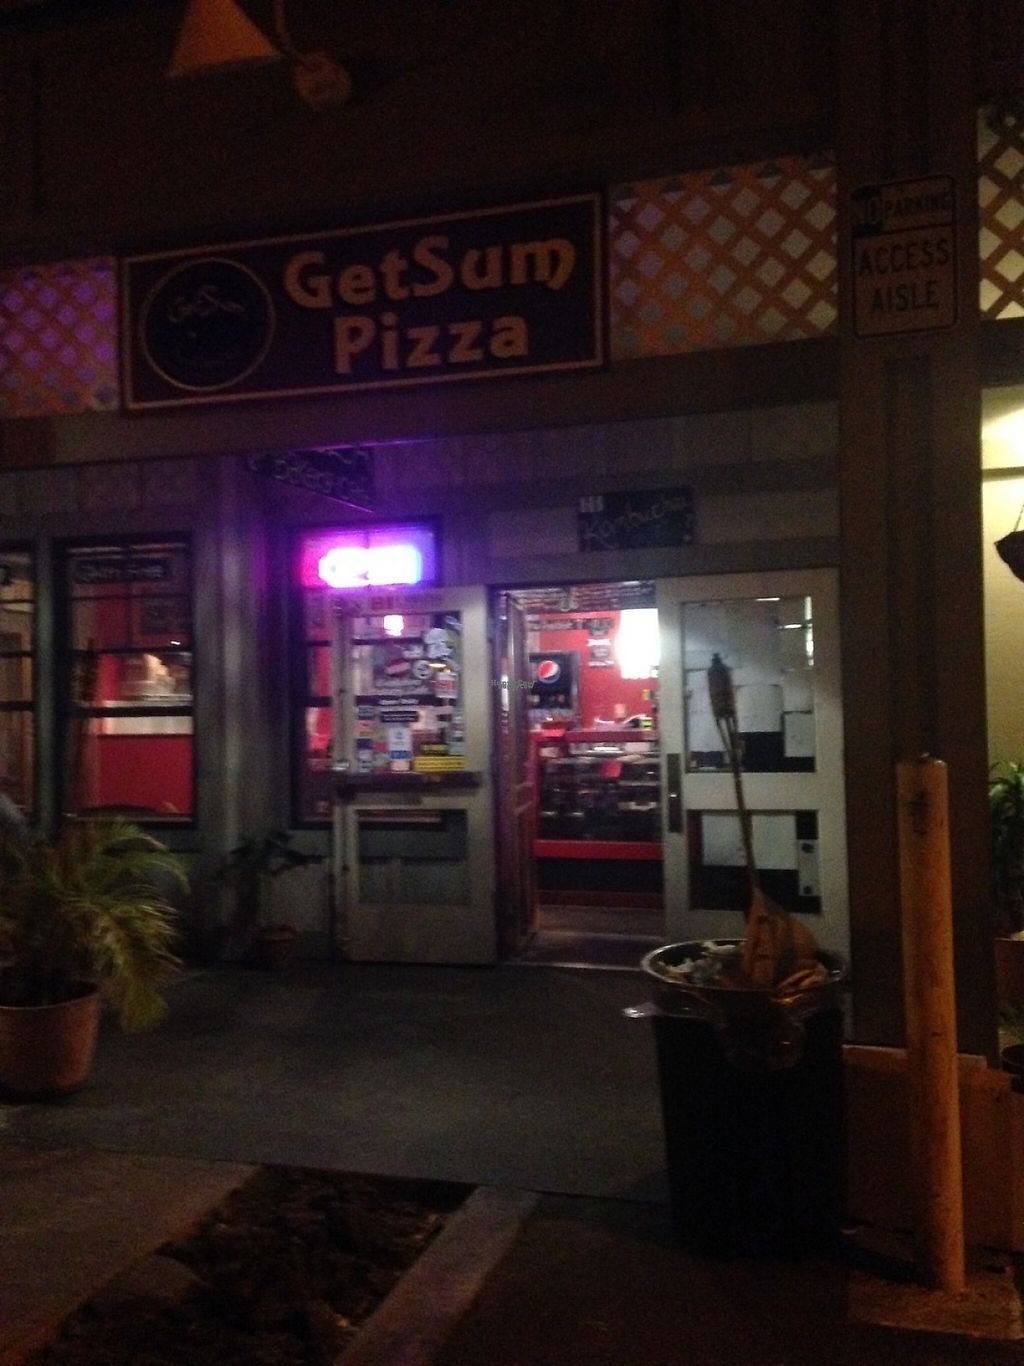 """Photo of Get Sum Pizza  by <a href=""""/members/profile/smfortissimo"""">smfortissimo</a> <br/>Store front at night <br/> March 25, 2017  - <a href='/contact/abuse/image/60803/240465'>Report</a>"""